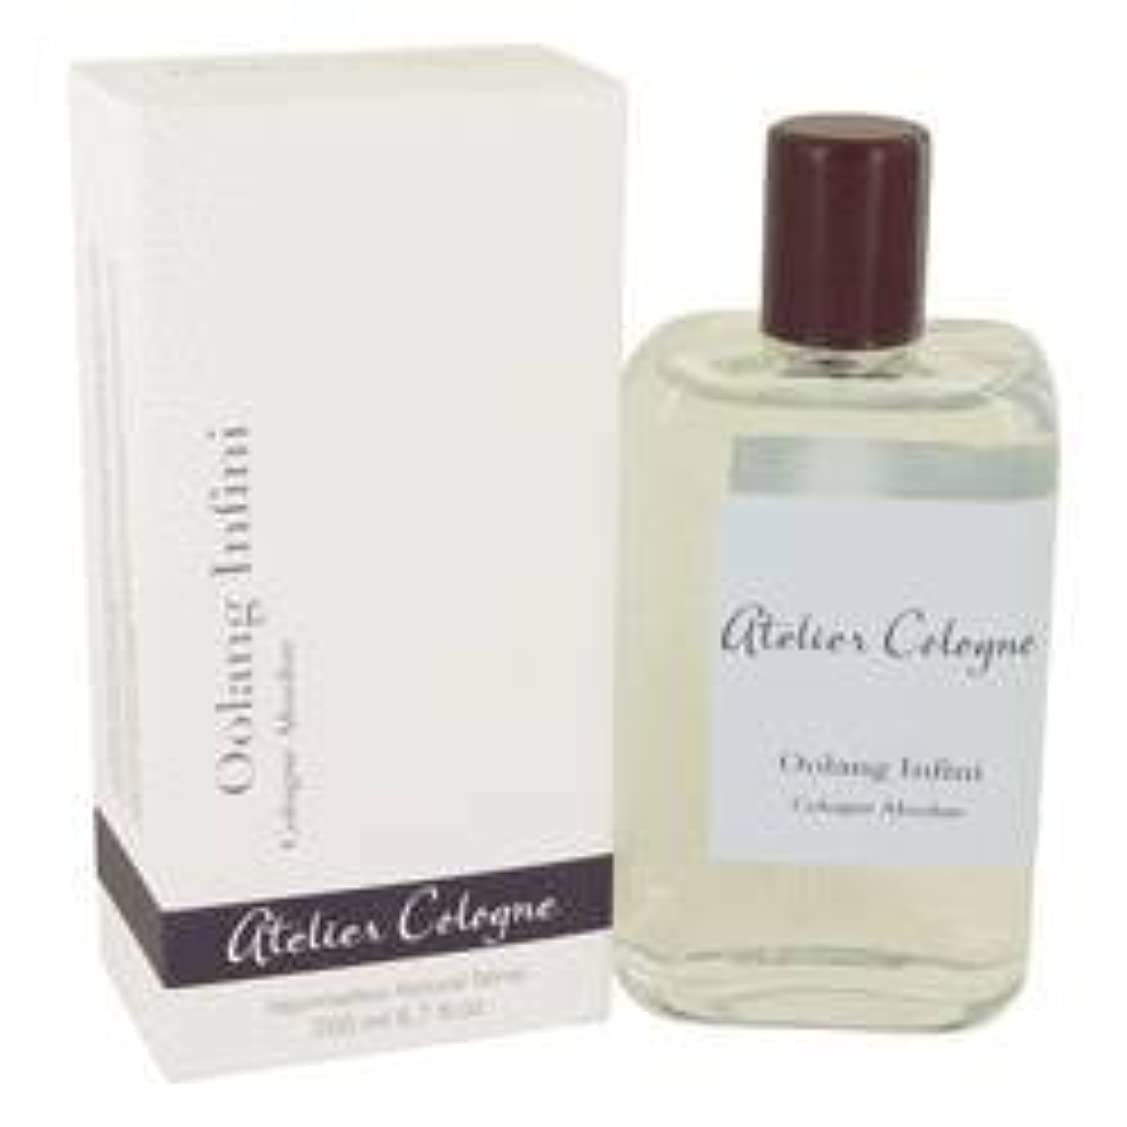 こっそりアミューズ枠Oolang Infini Pure Perfume Spray By Atelier Cologne